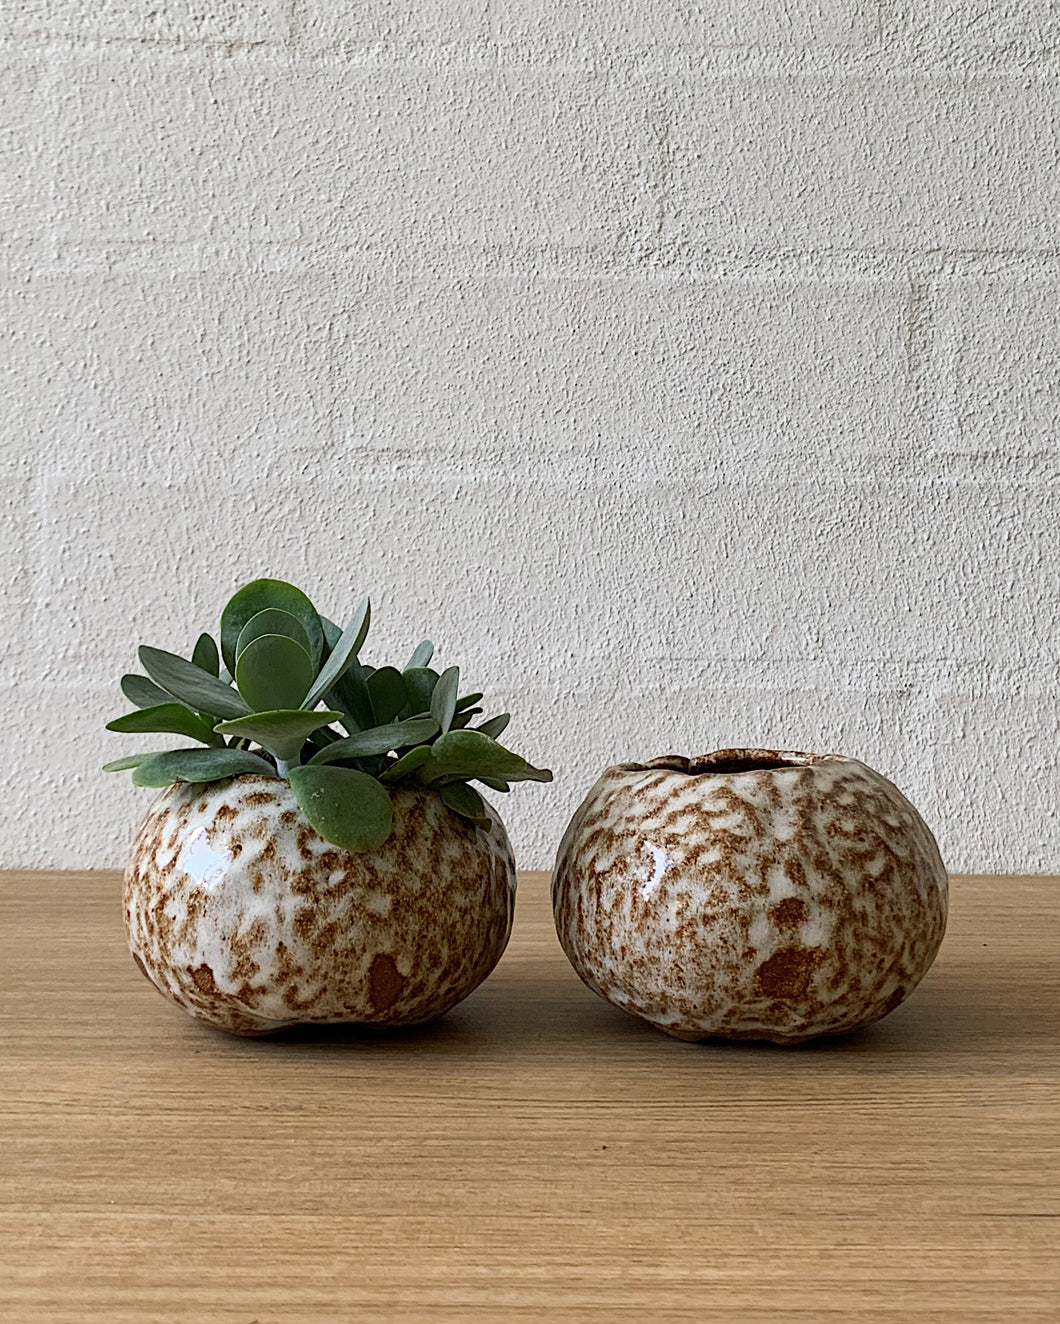 pinchME - earthy rounded vessel